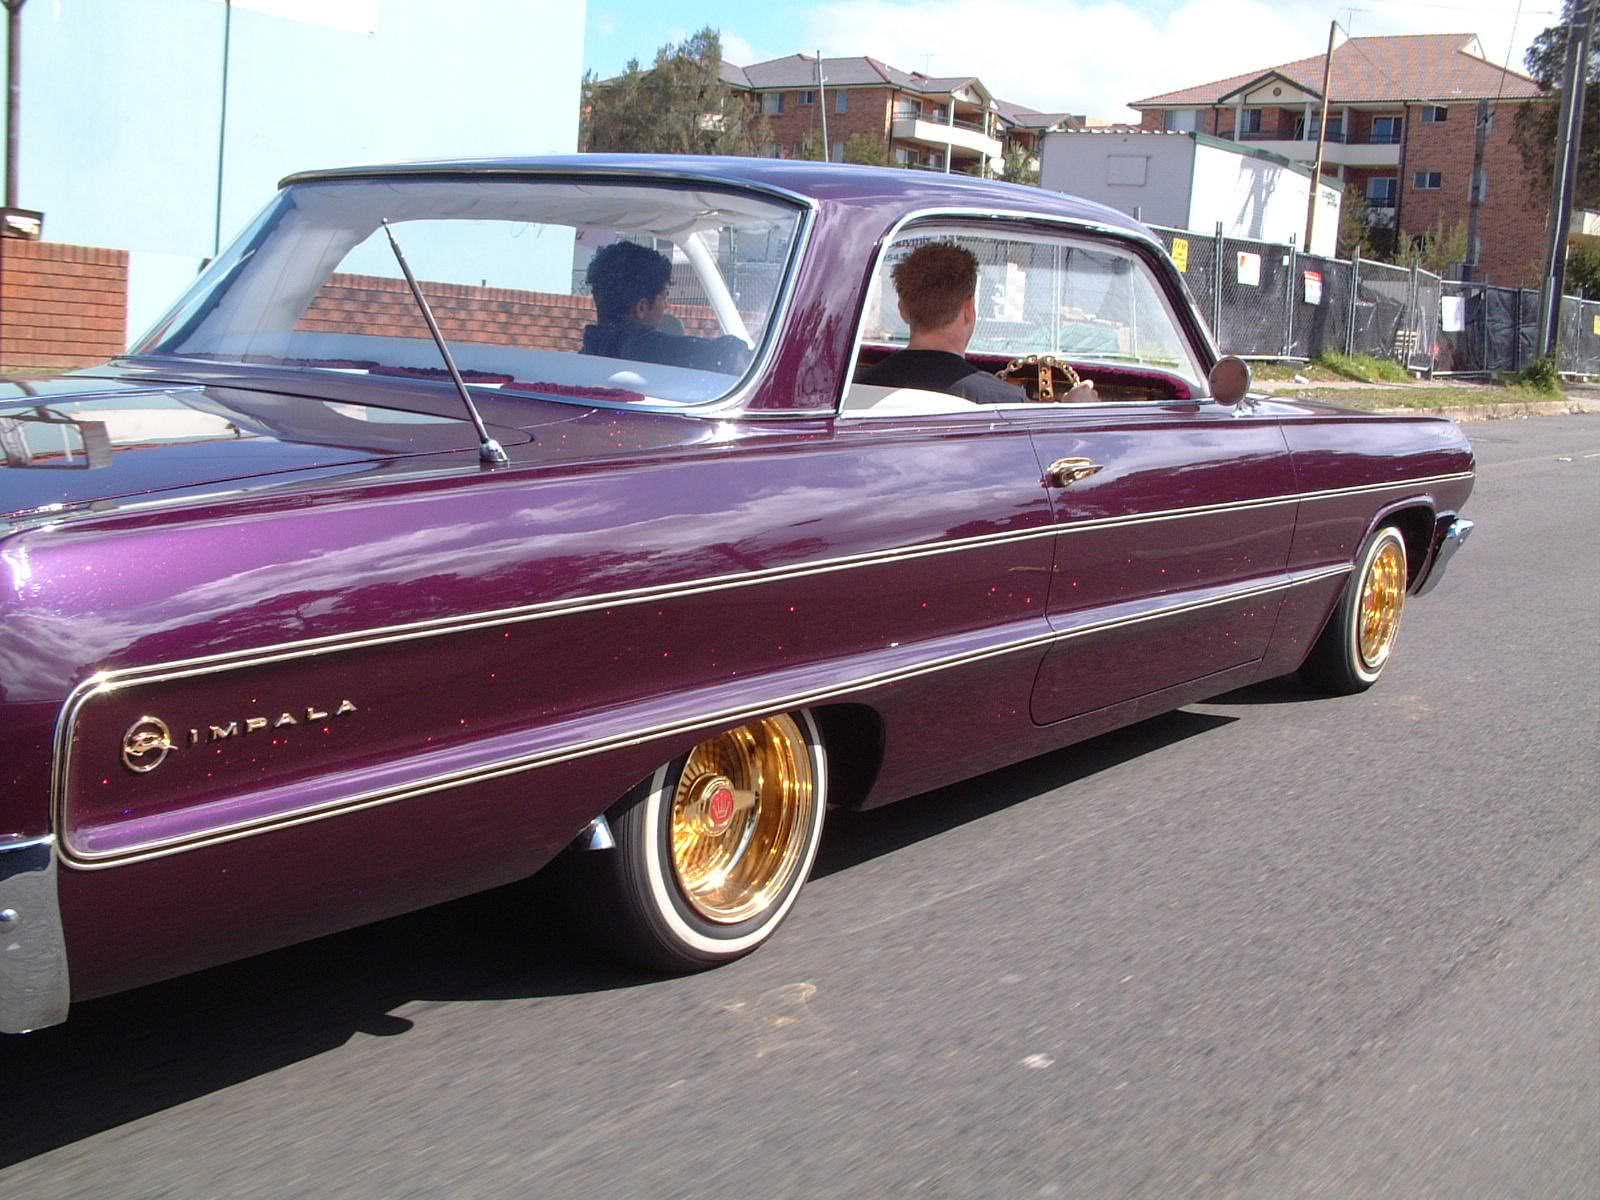 LOWRIDER lowriders custom auto car cars vehicle vehicles automobile 1600x1200